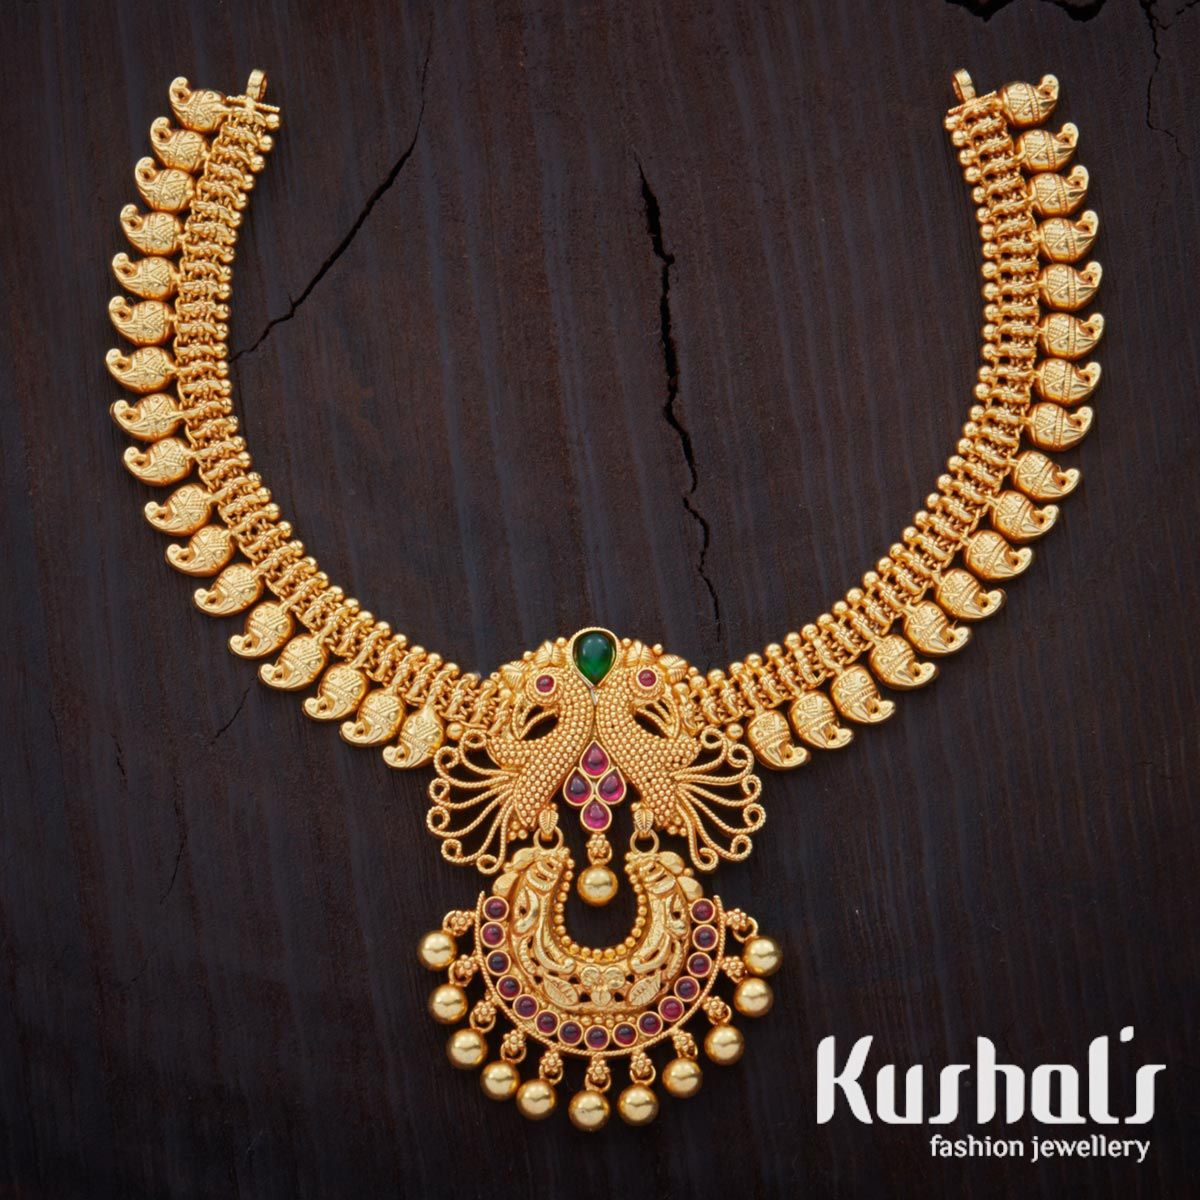 south indian traditional silver temple jewellery peacock design necklace studded with spinal